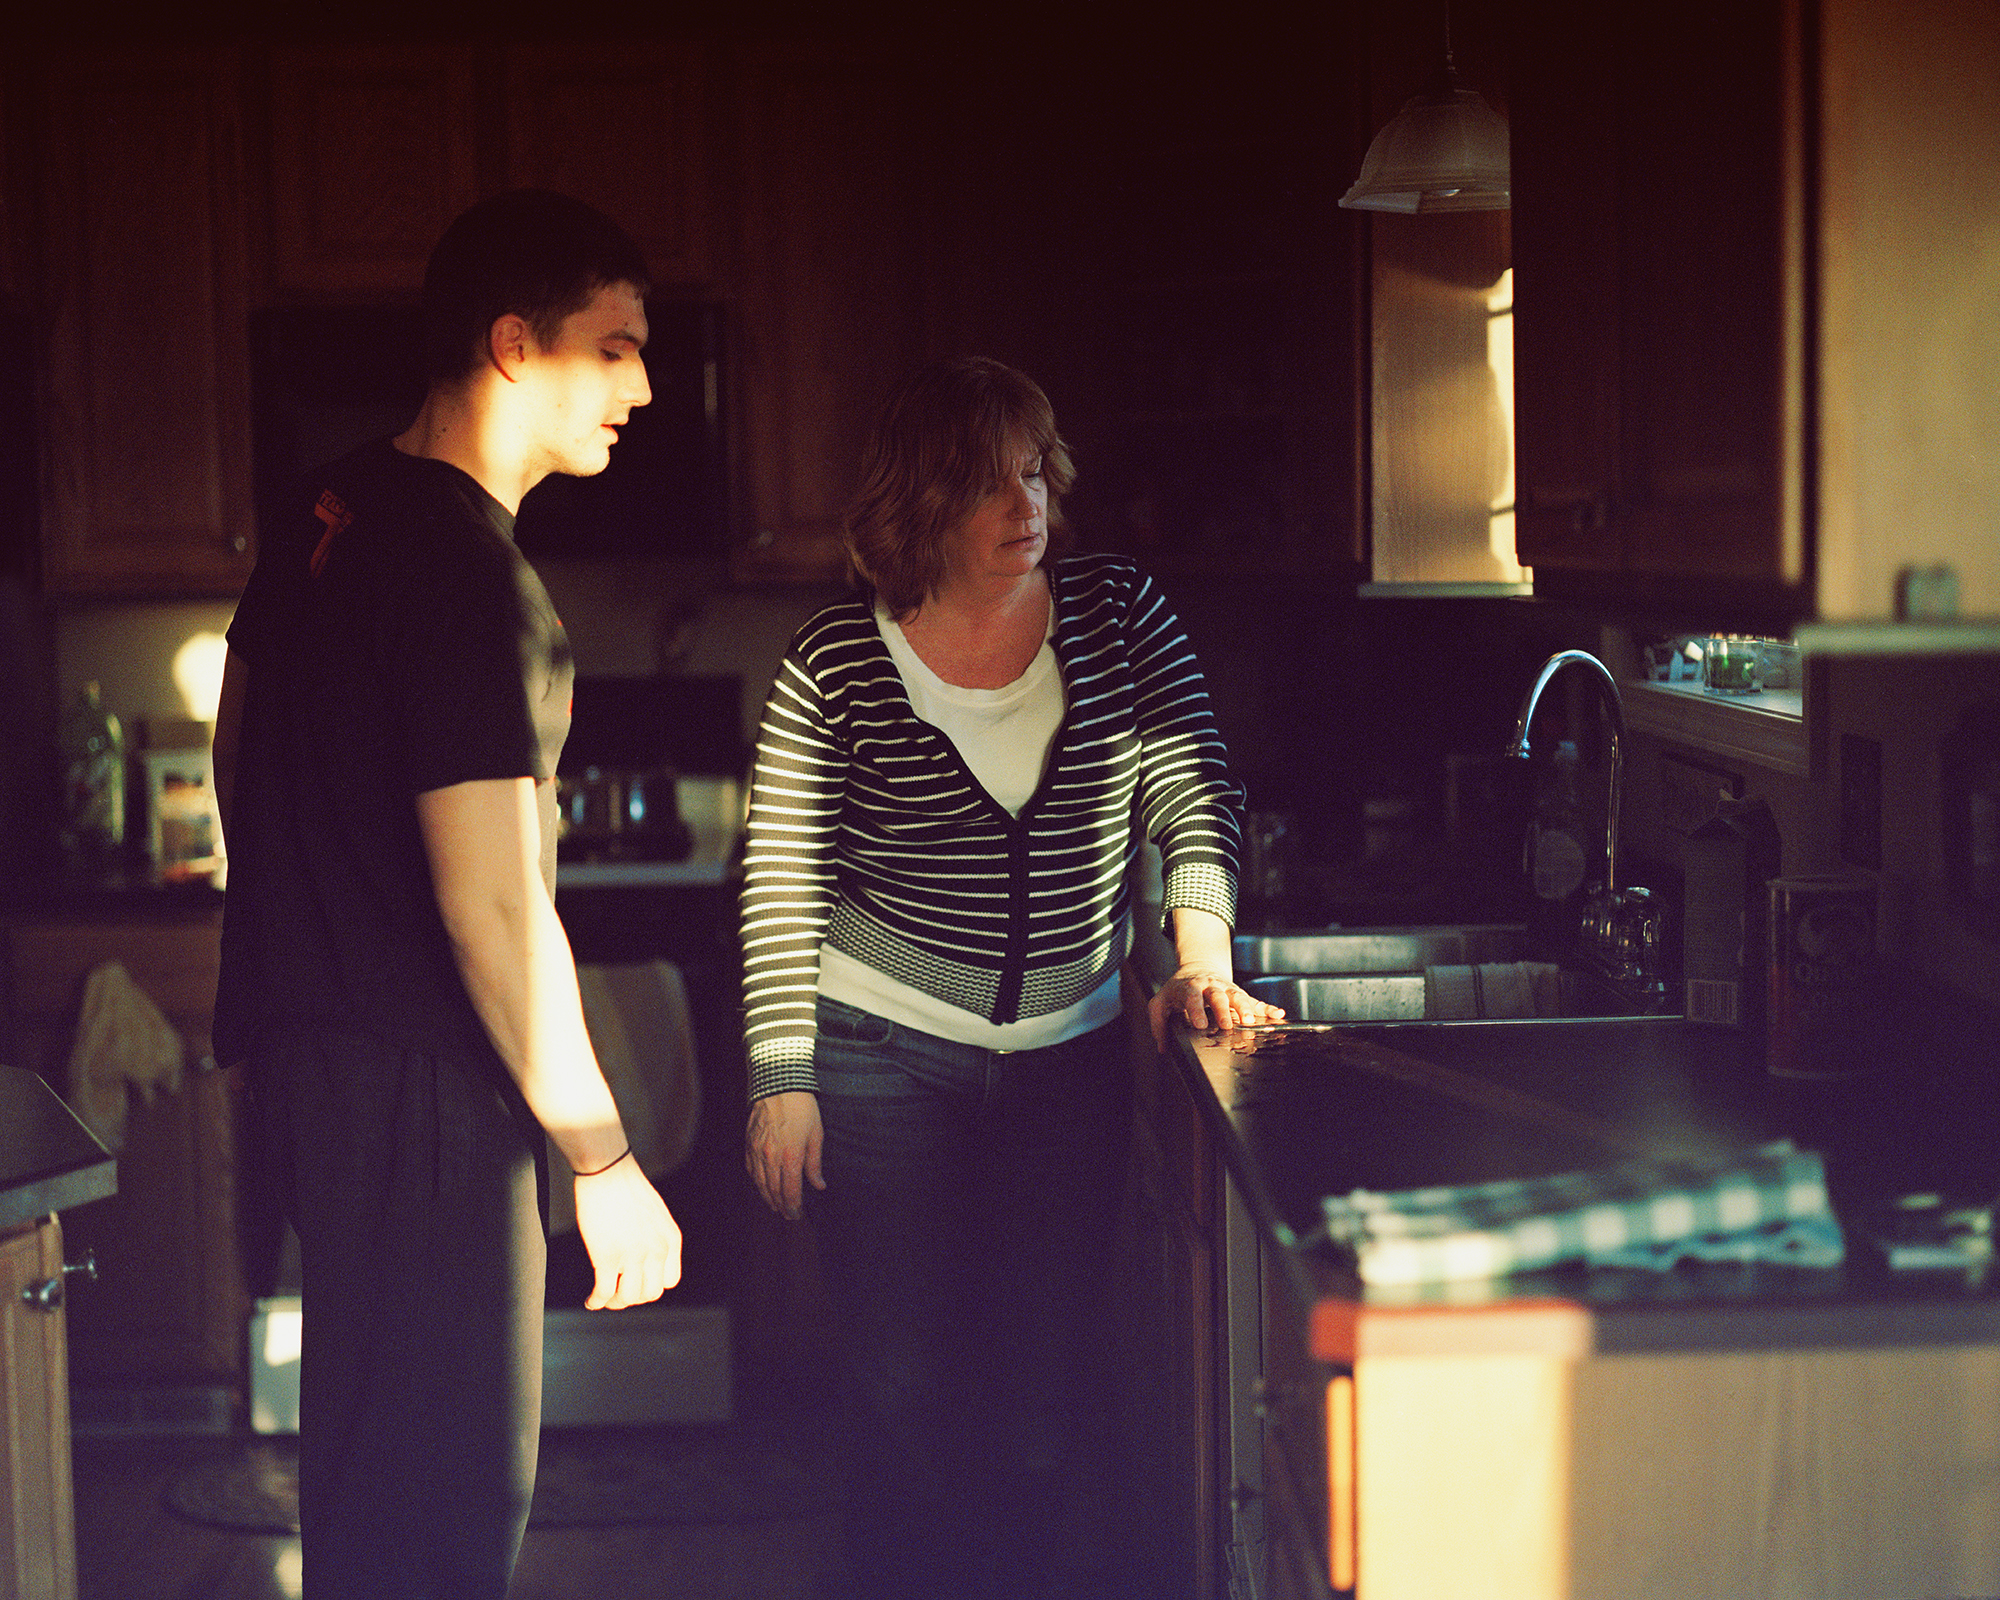 Ben & Mom talking about the dishwasher